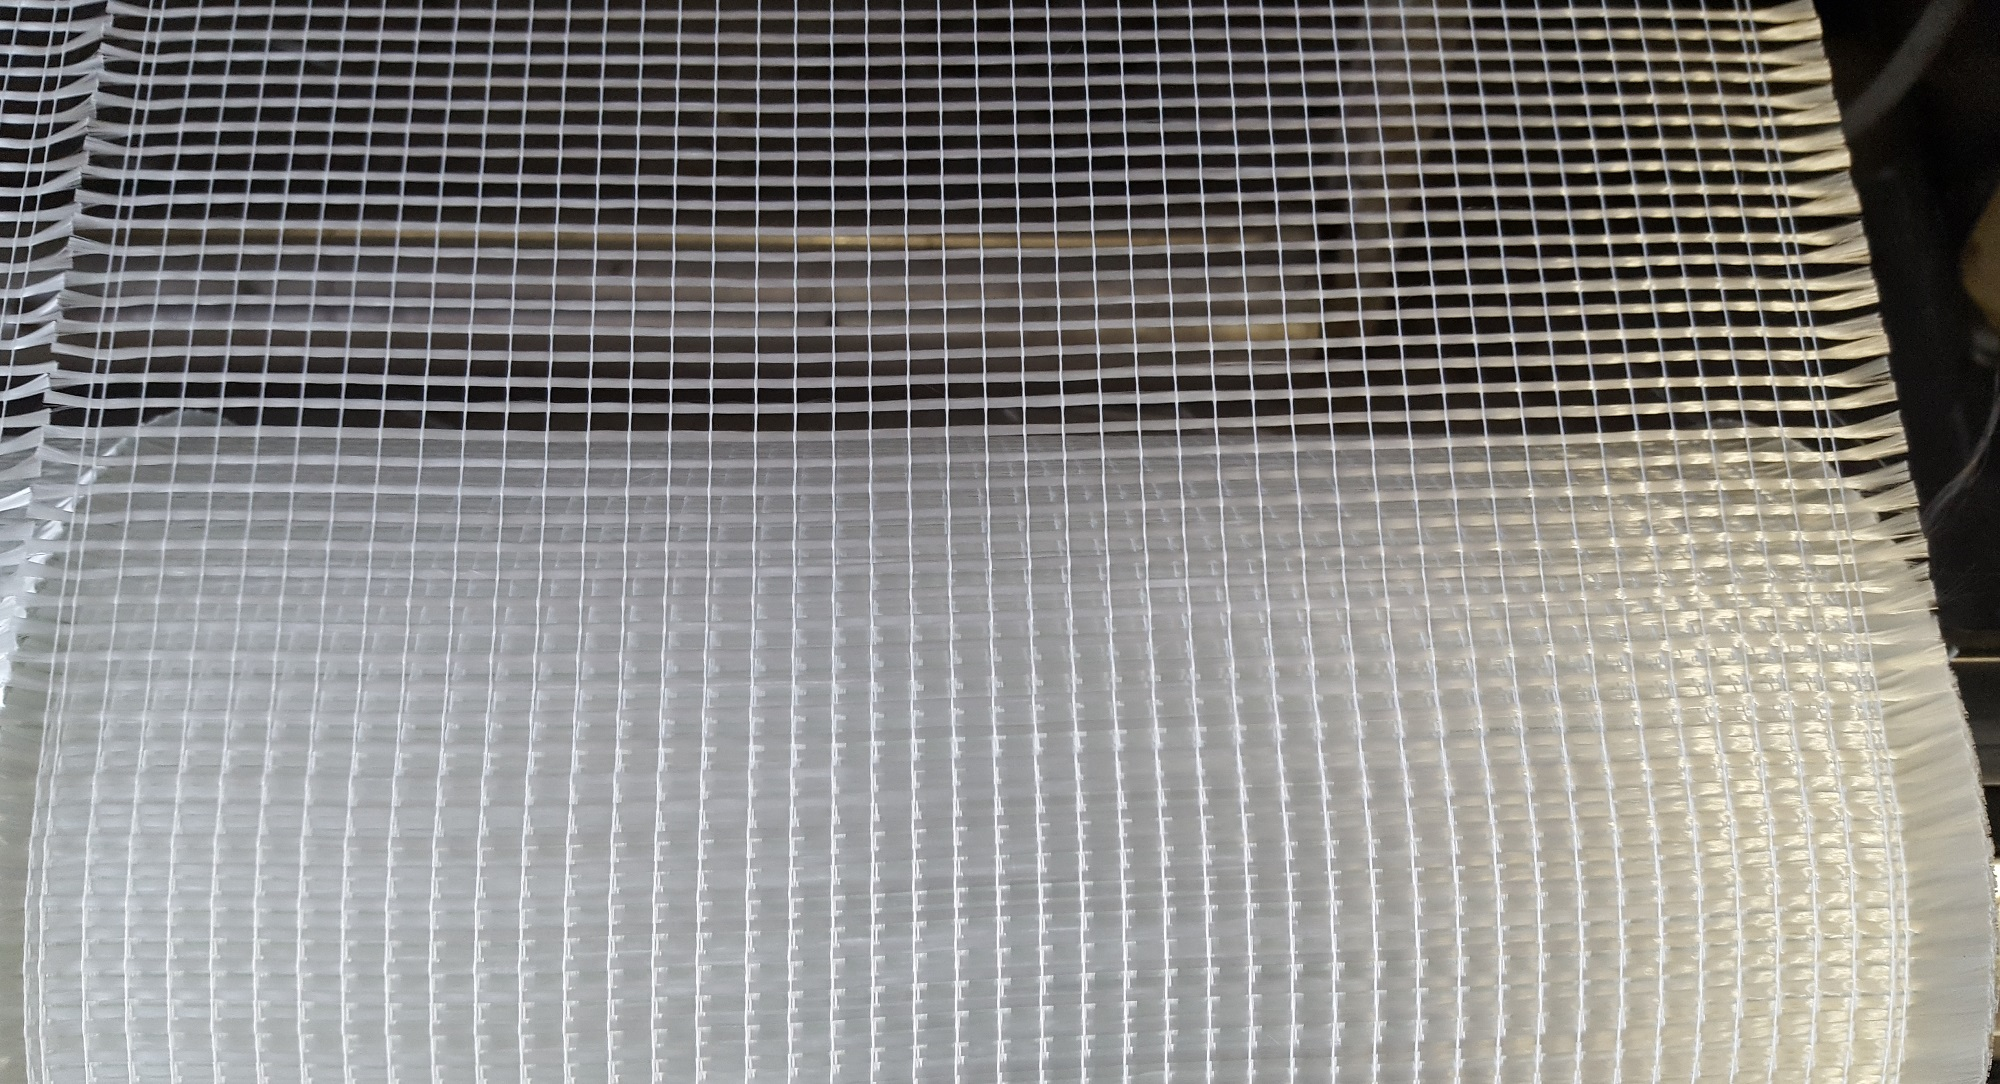 Mesh ecru fabric tape UTPR 90/23